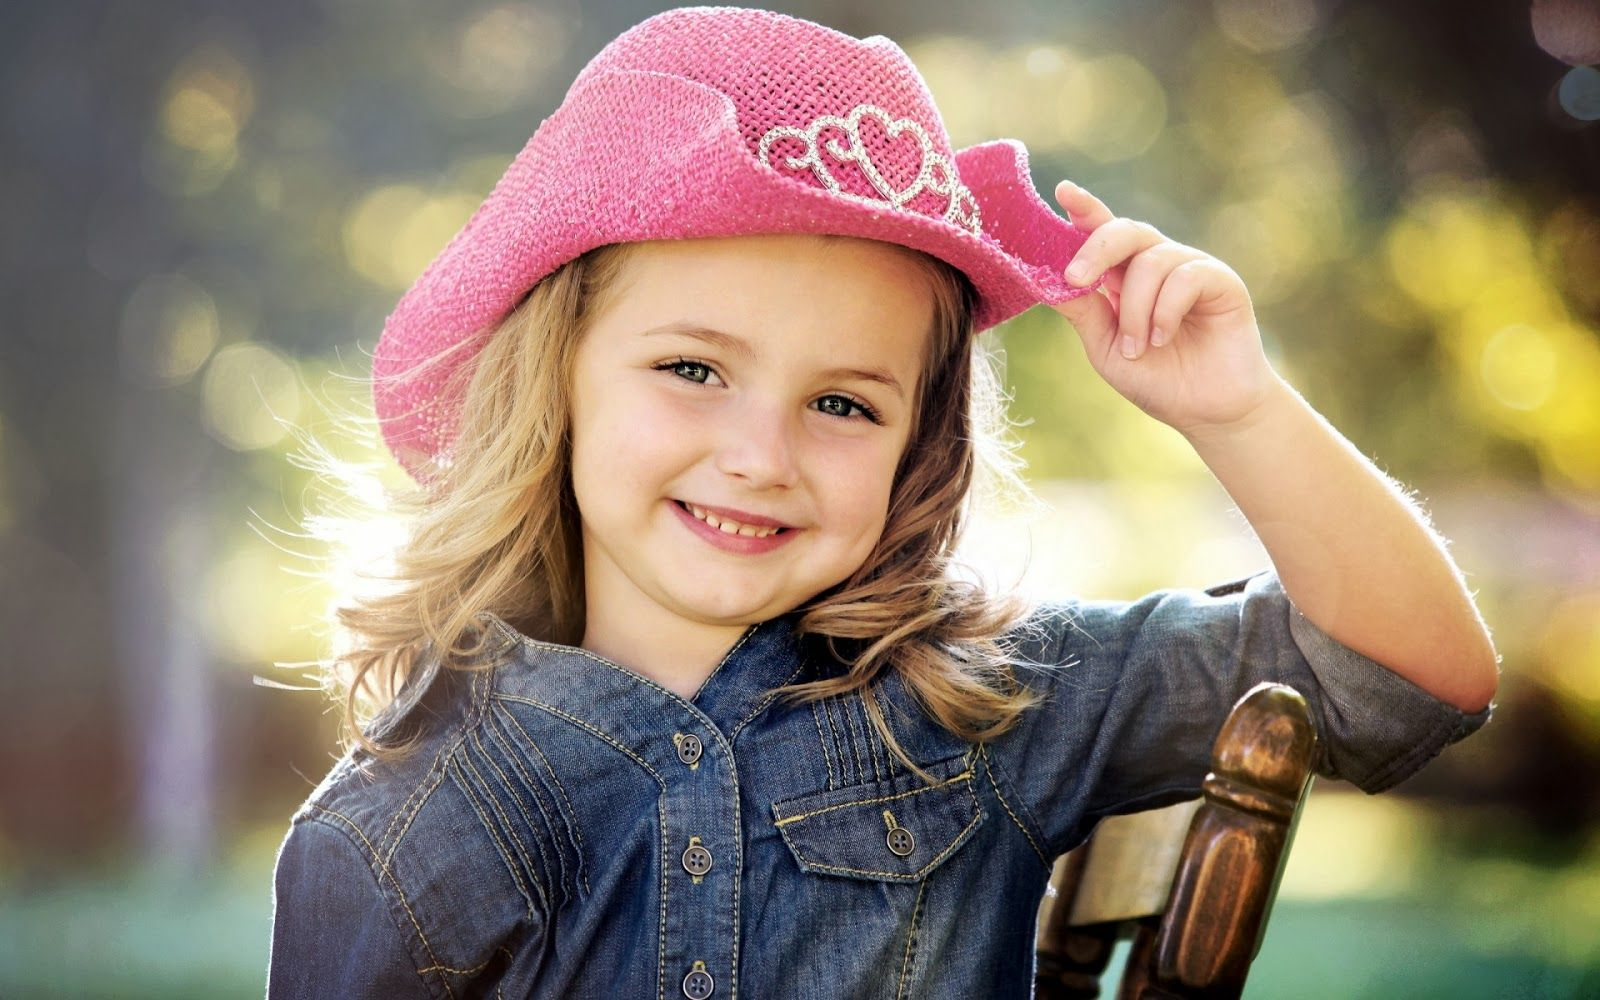 little cute baby girl wallpaper | hd wallpapers download | tiny